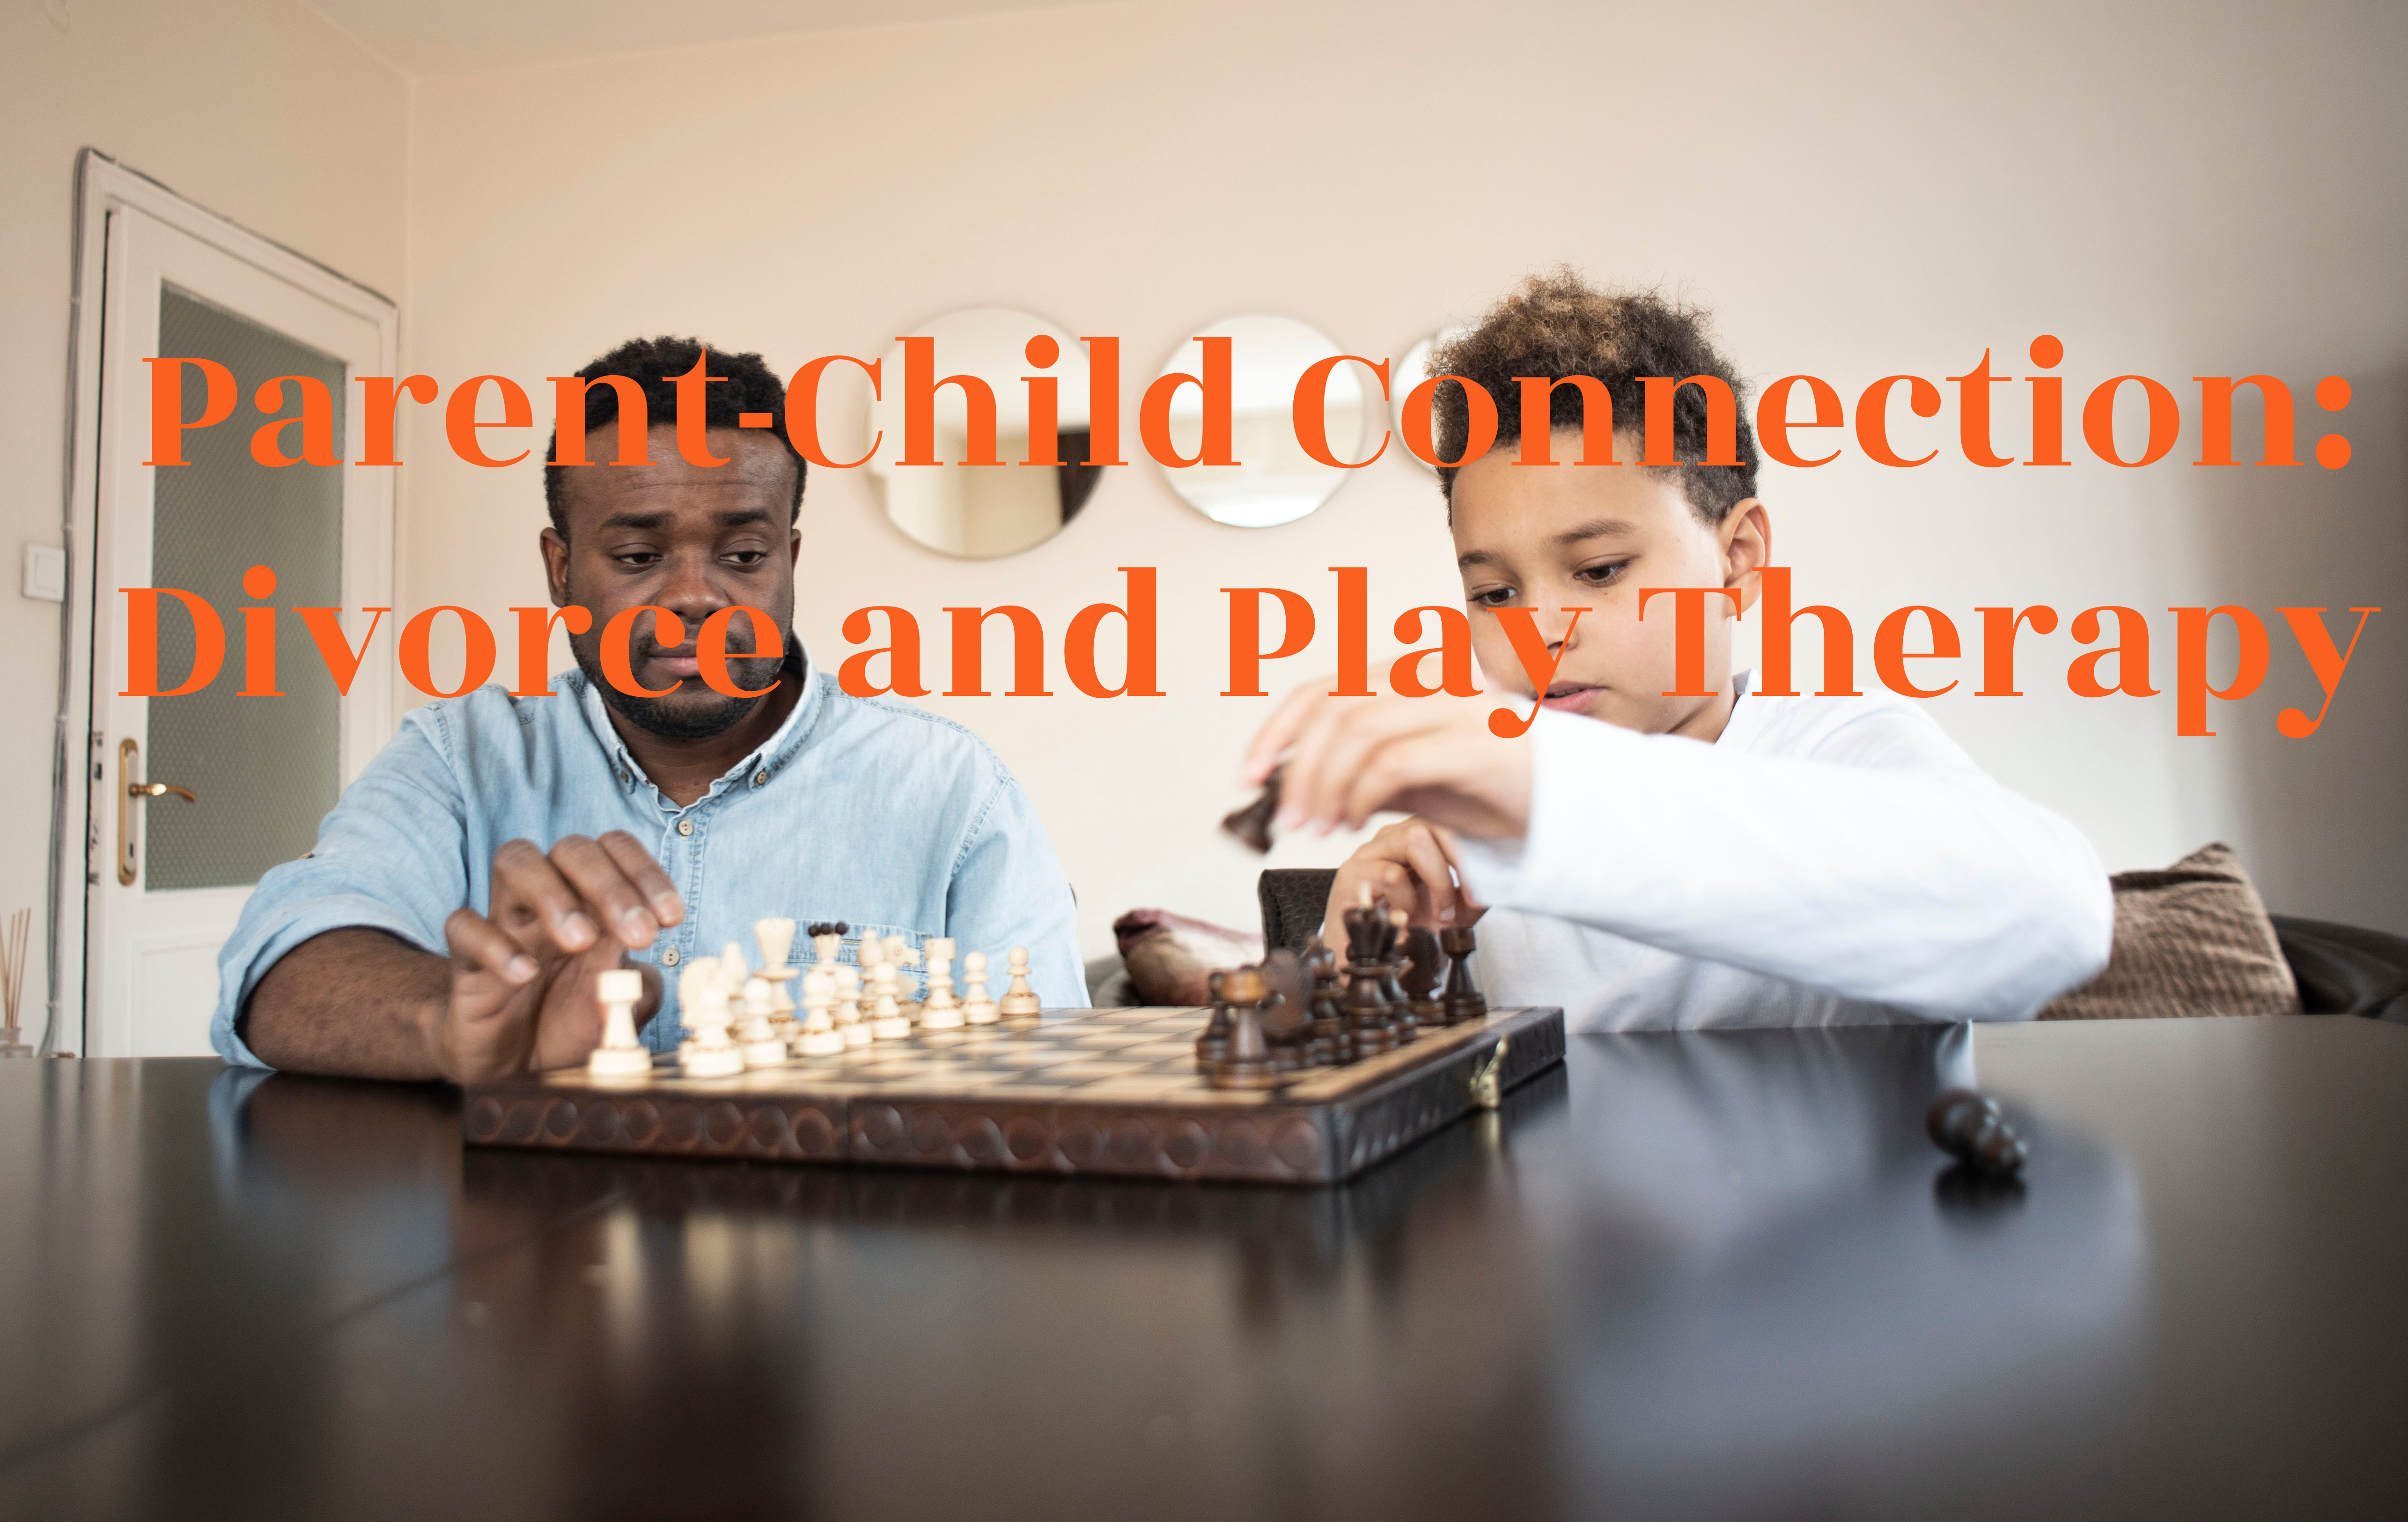 Divorce and play therapy